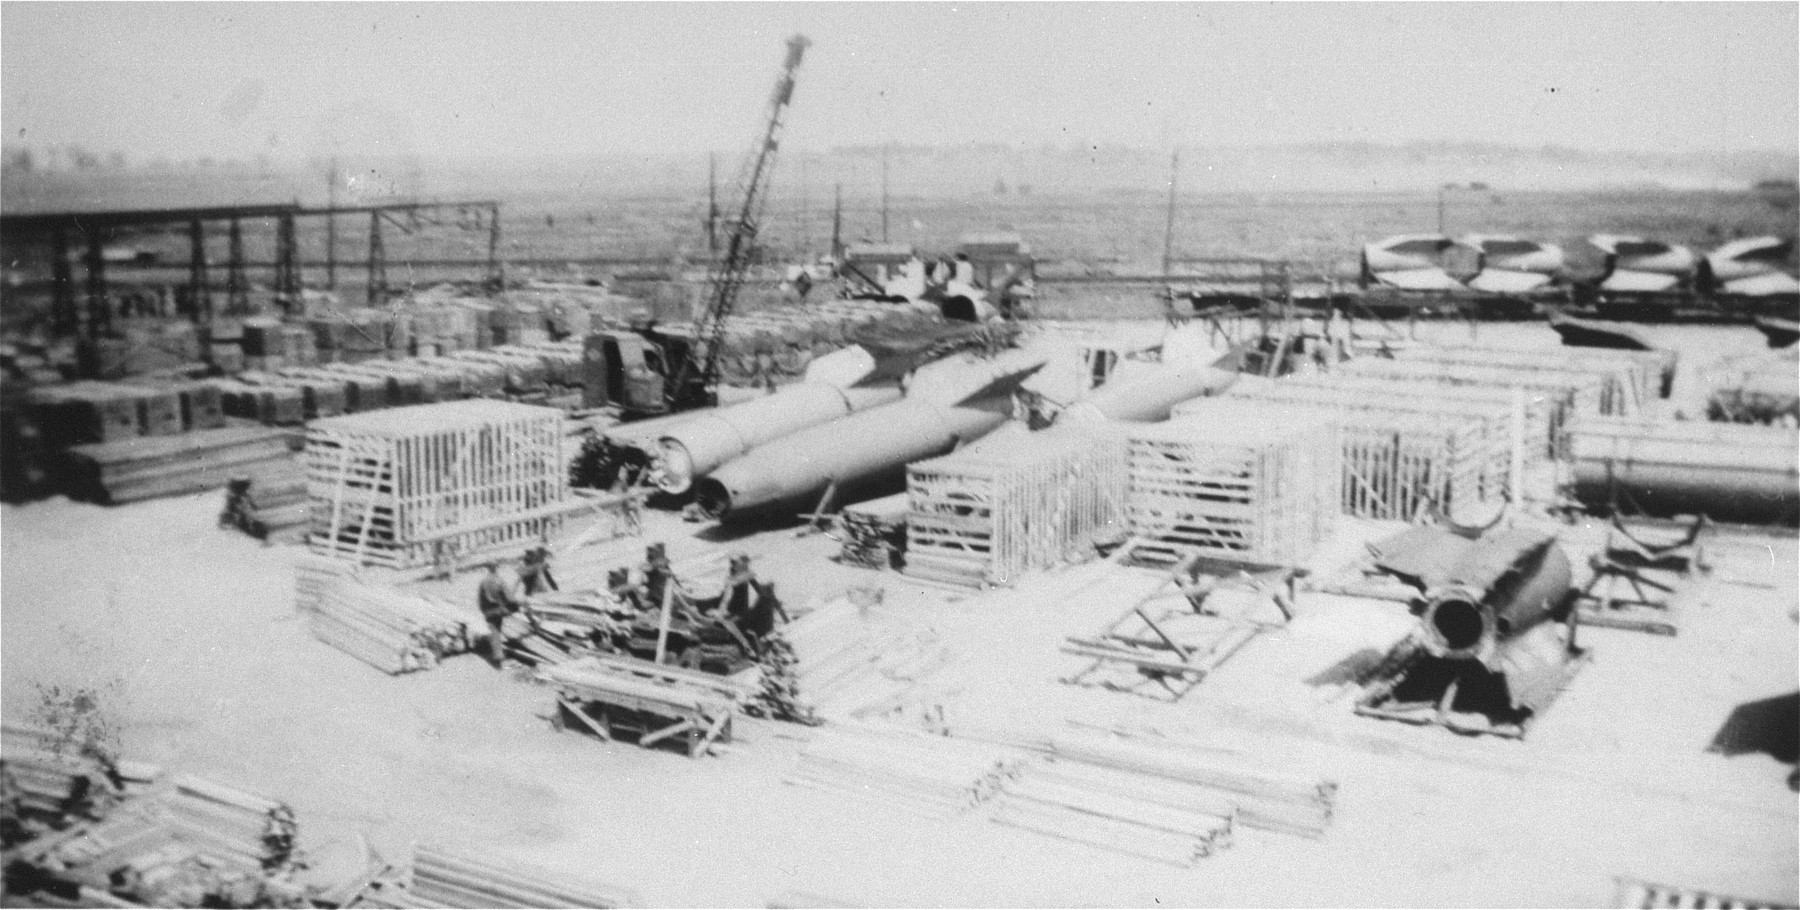 A V-2 rocket that was manufactured at Dora-Mittelbau, is being crated at the shipping docks in Antwerp for trans-shipment to the United States.  A trainload of V-2 rocket tail fins can be seen in the background.